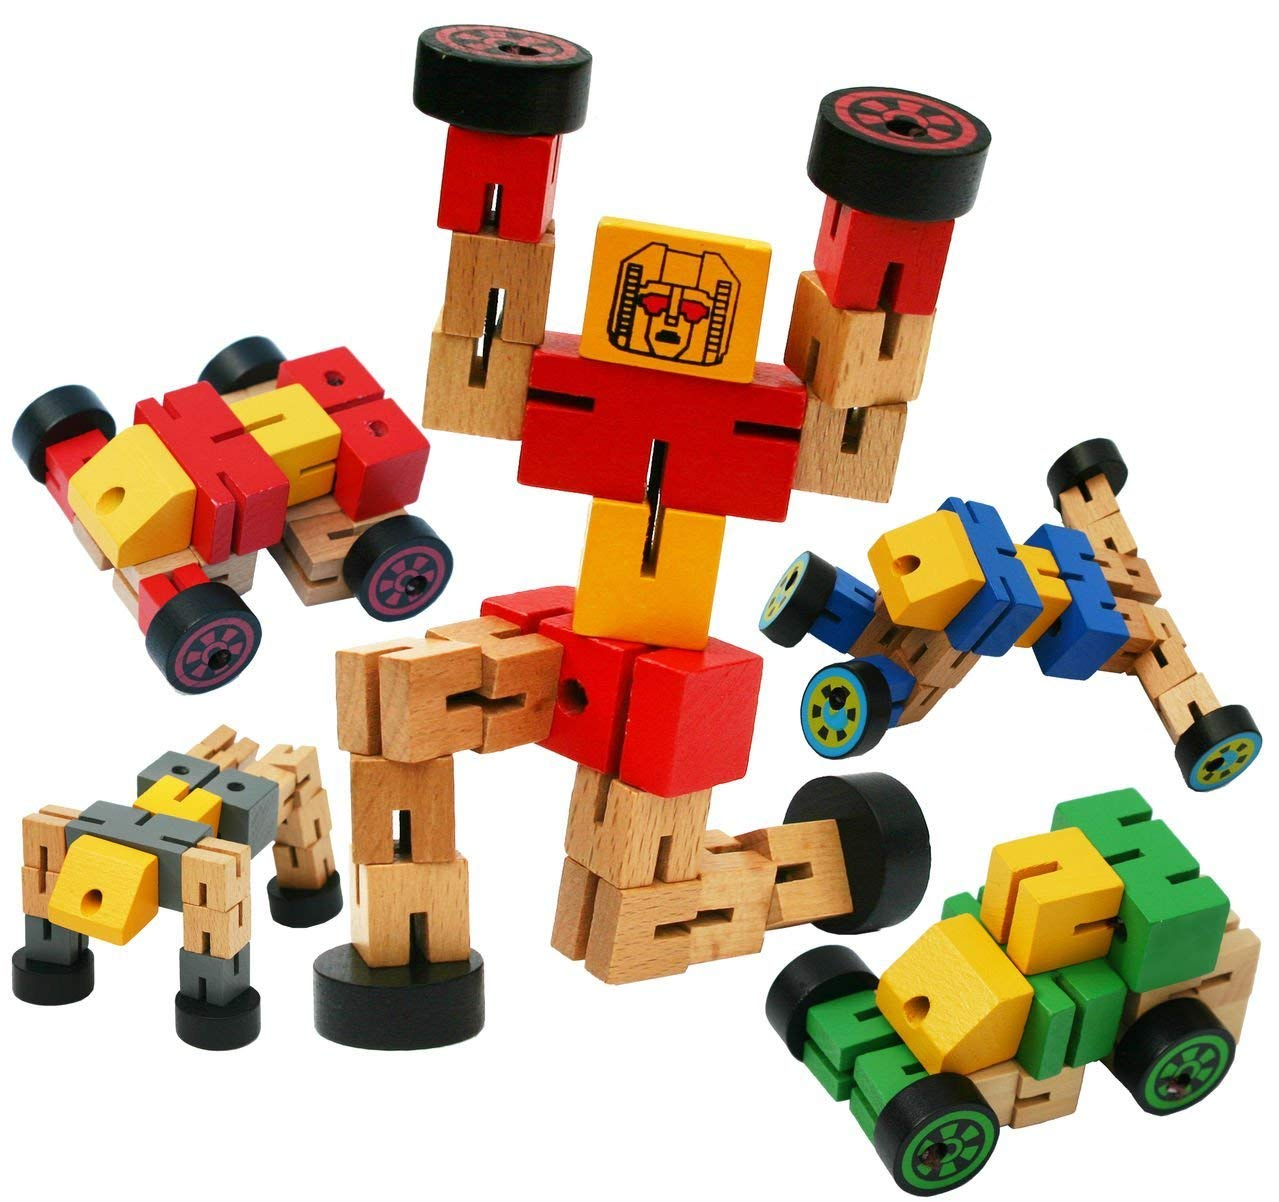 Wooden Toys 3 Year Old Toys of Wood Oxford Wooden Transfigures Toy Orange Construction Vehicle Toys